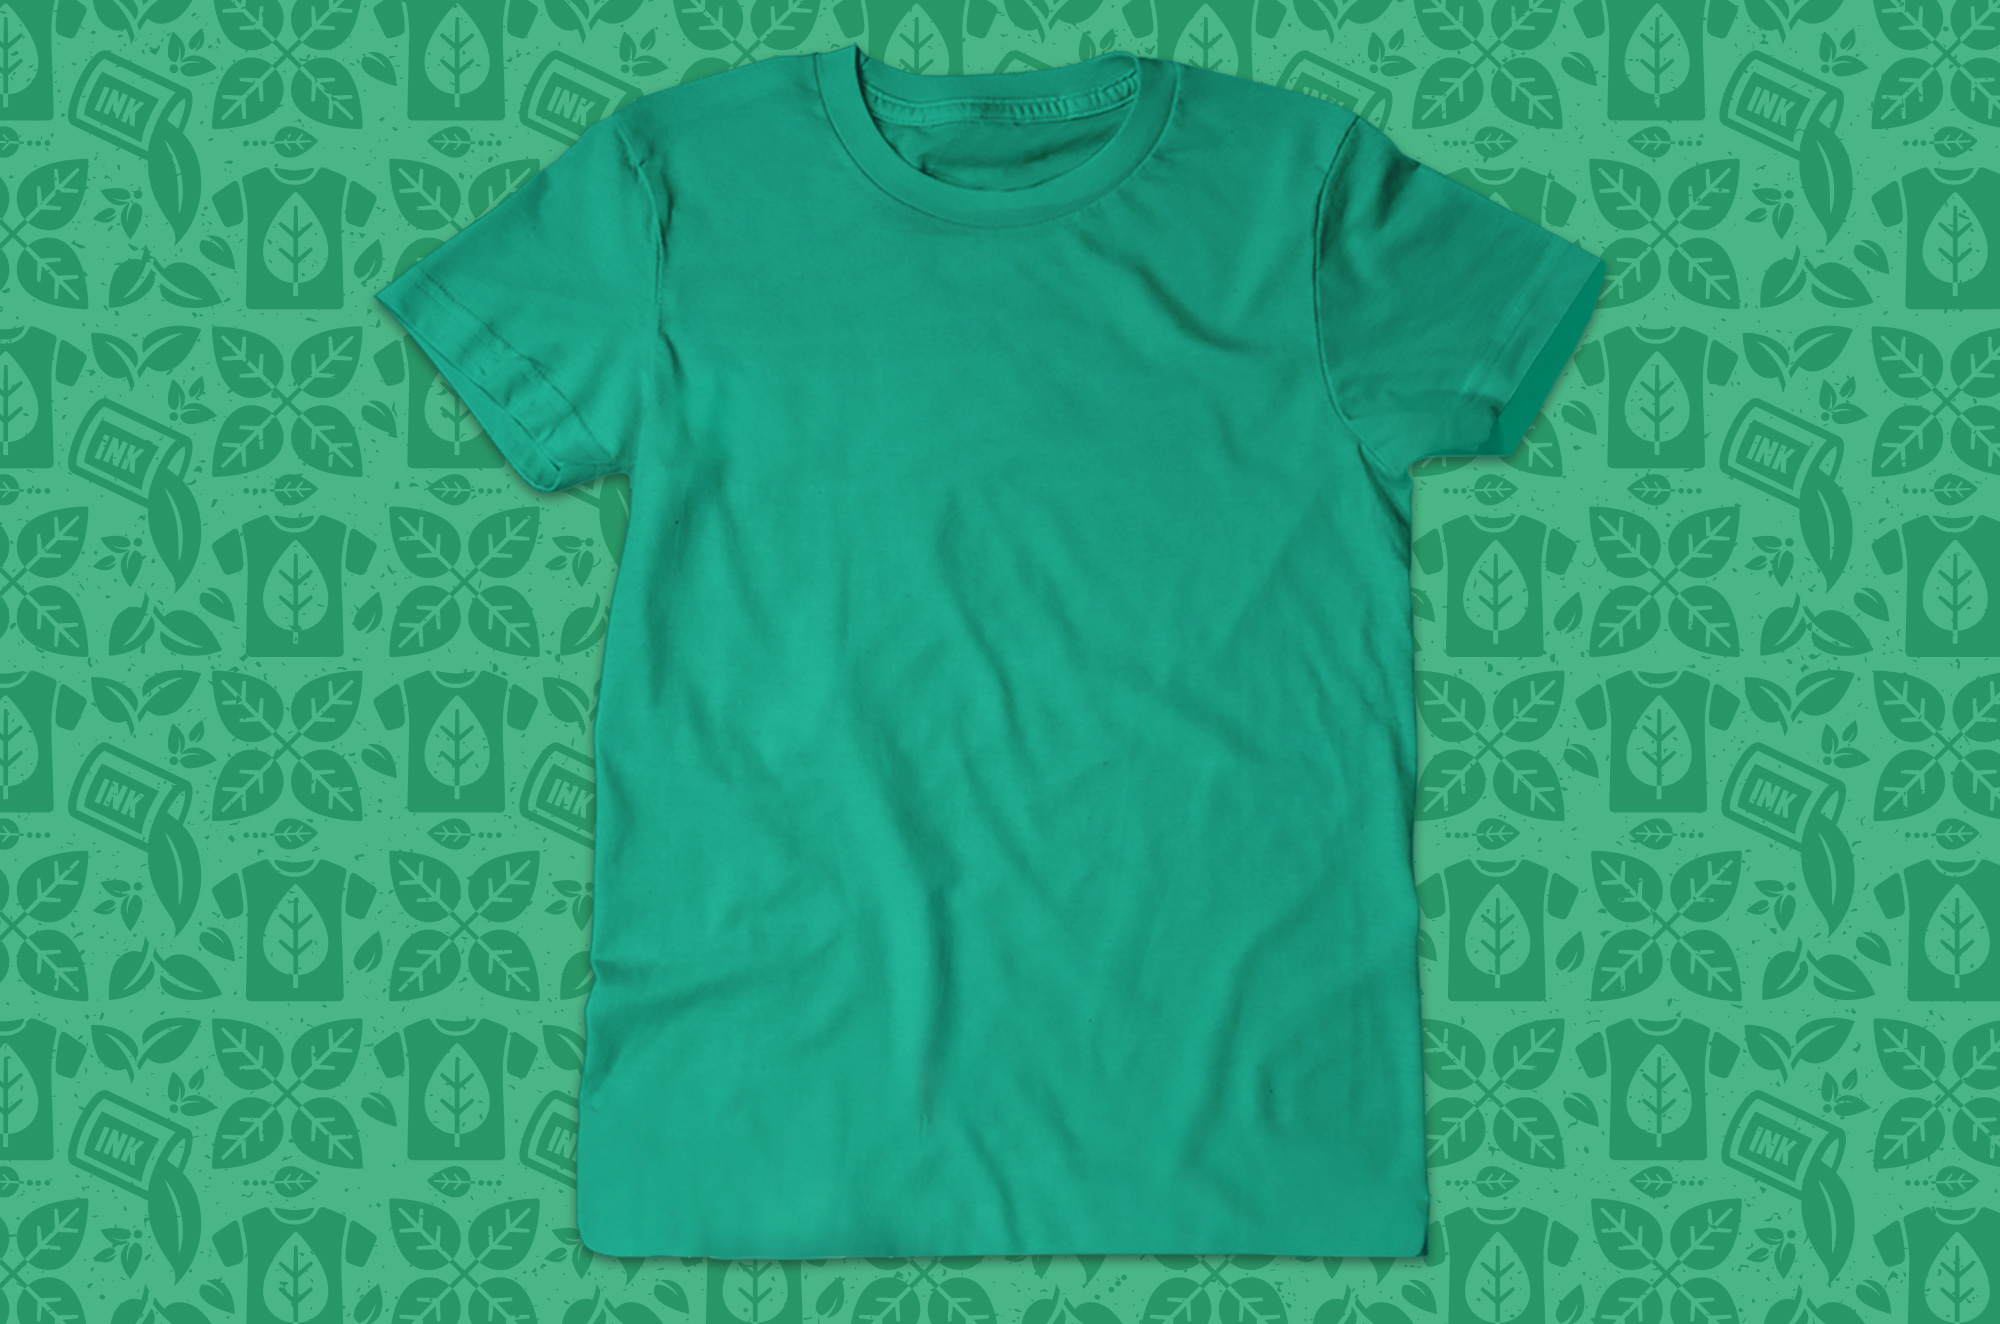 t shirts in bulk for screen printing organic baby clothes manufacturers